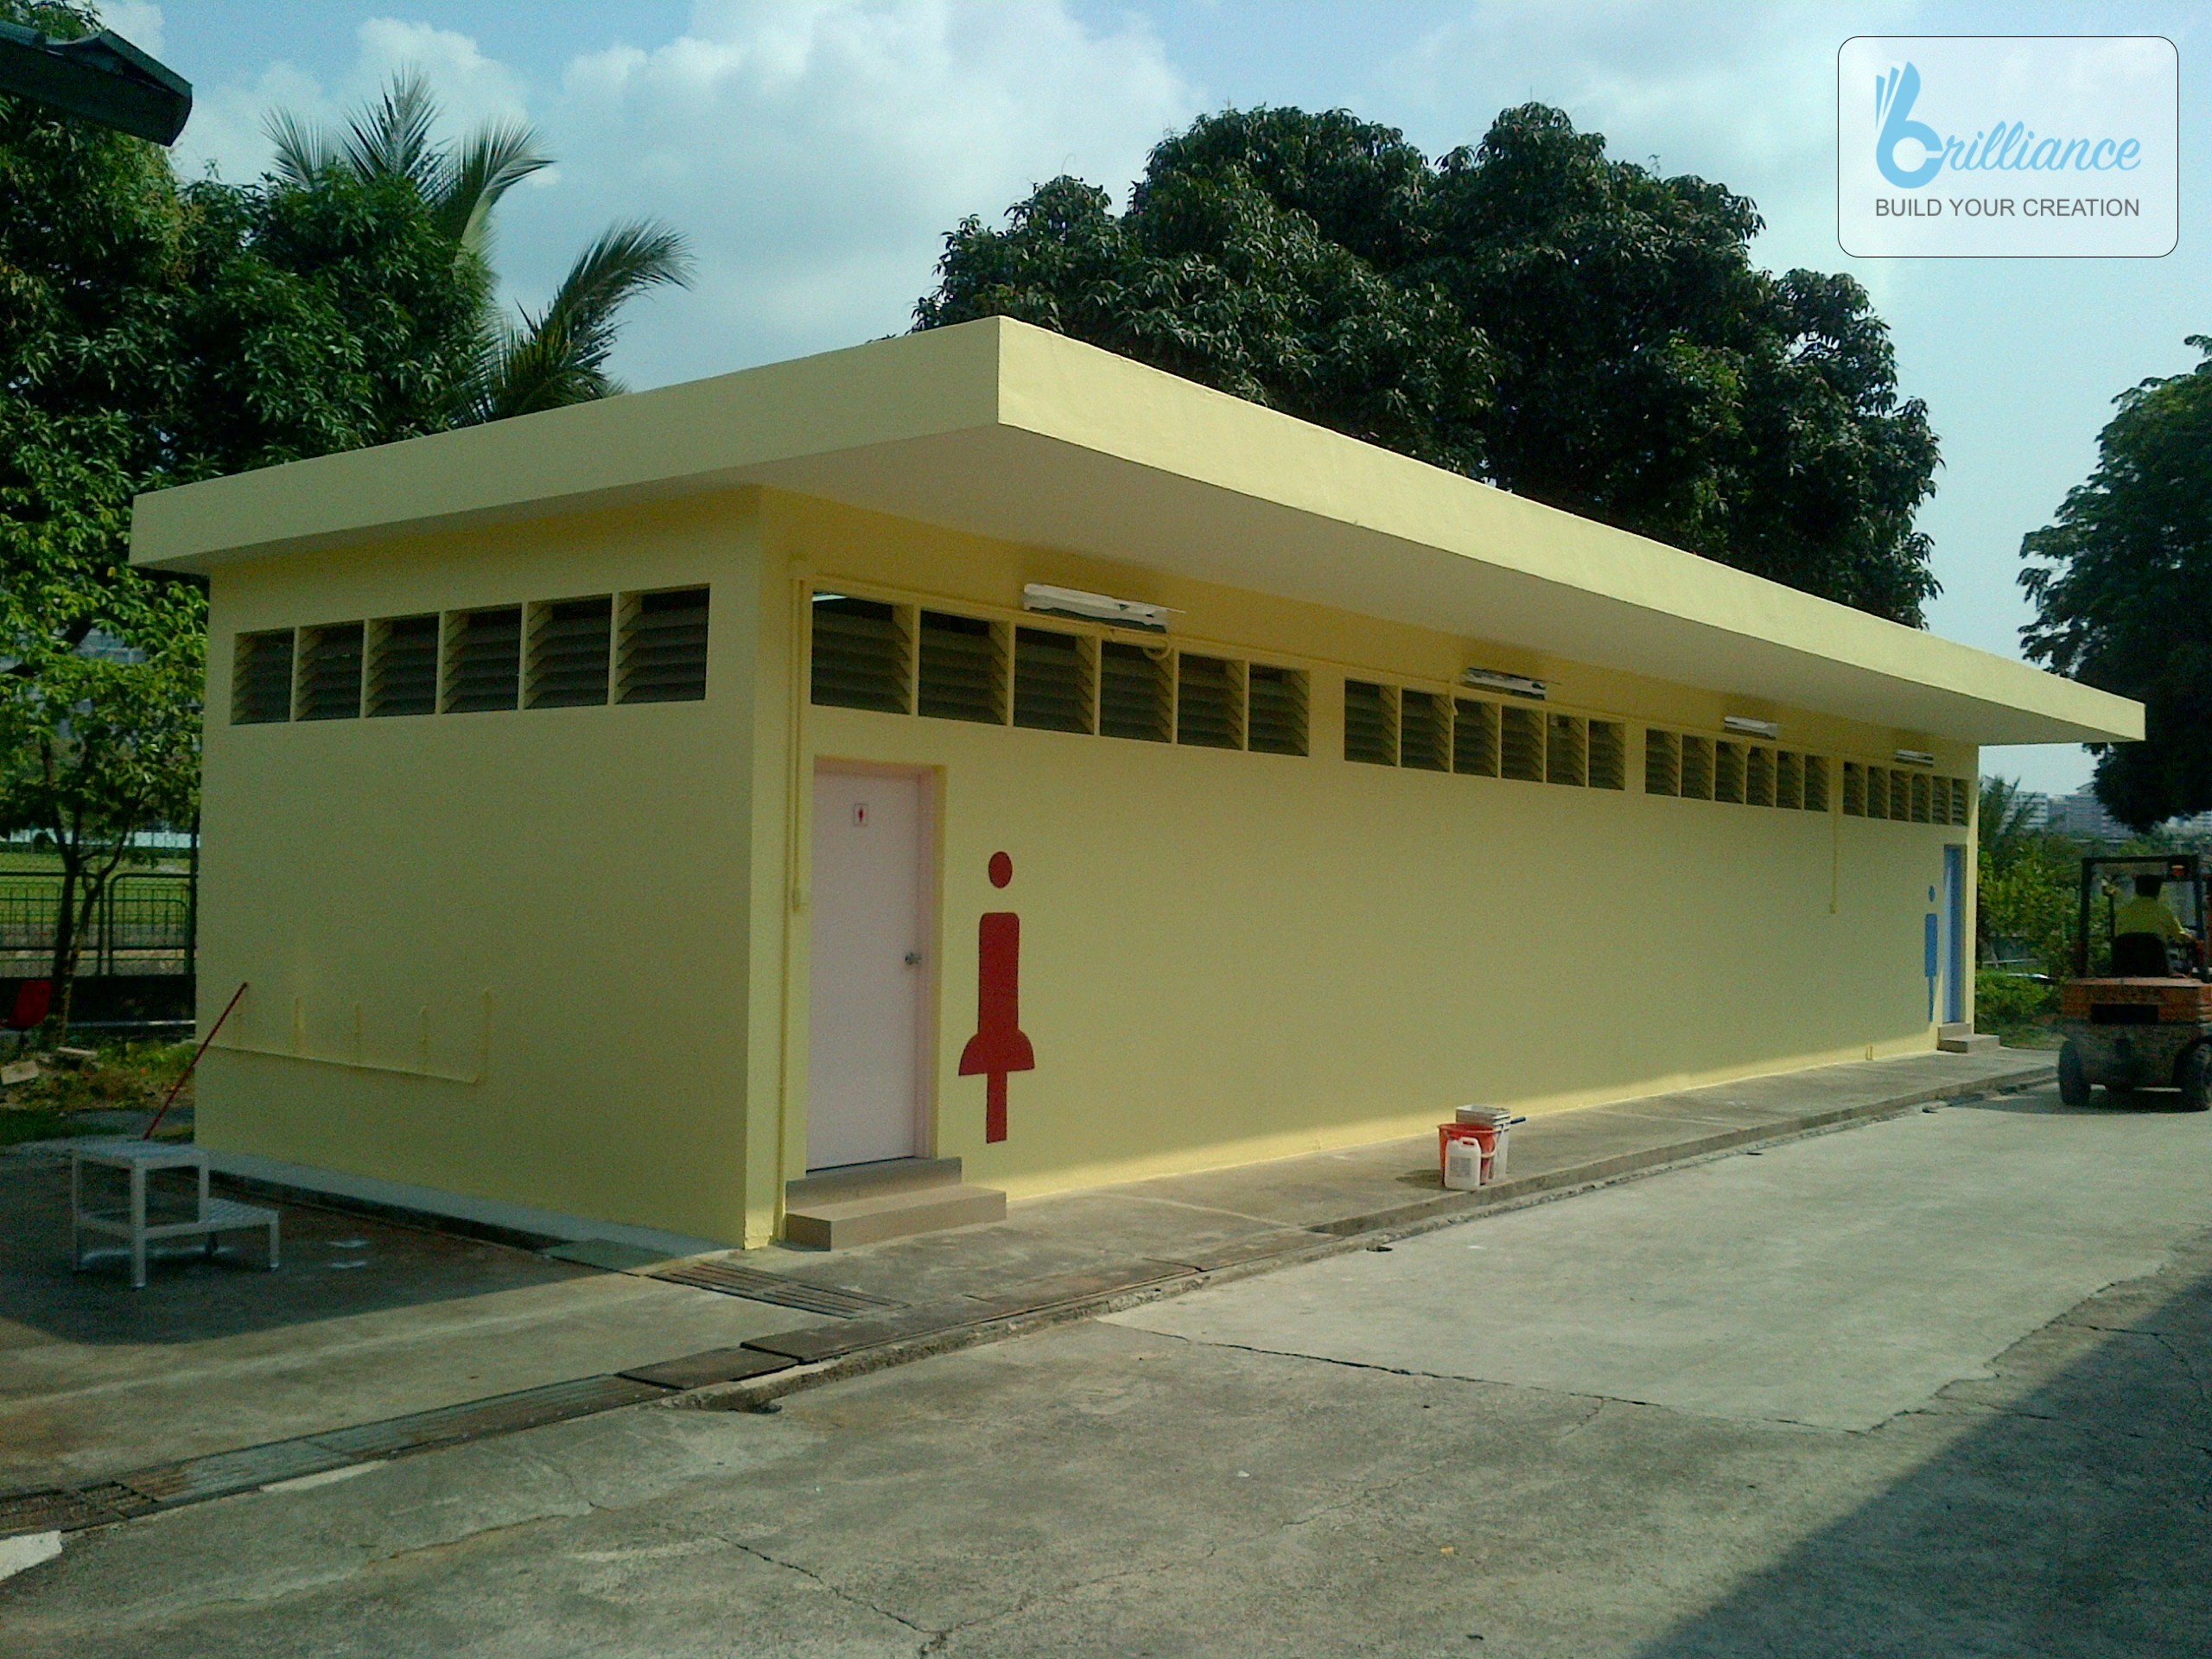 facilities facelift by Brilliance - exterior